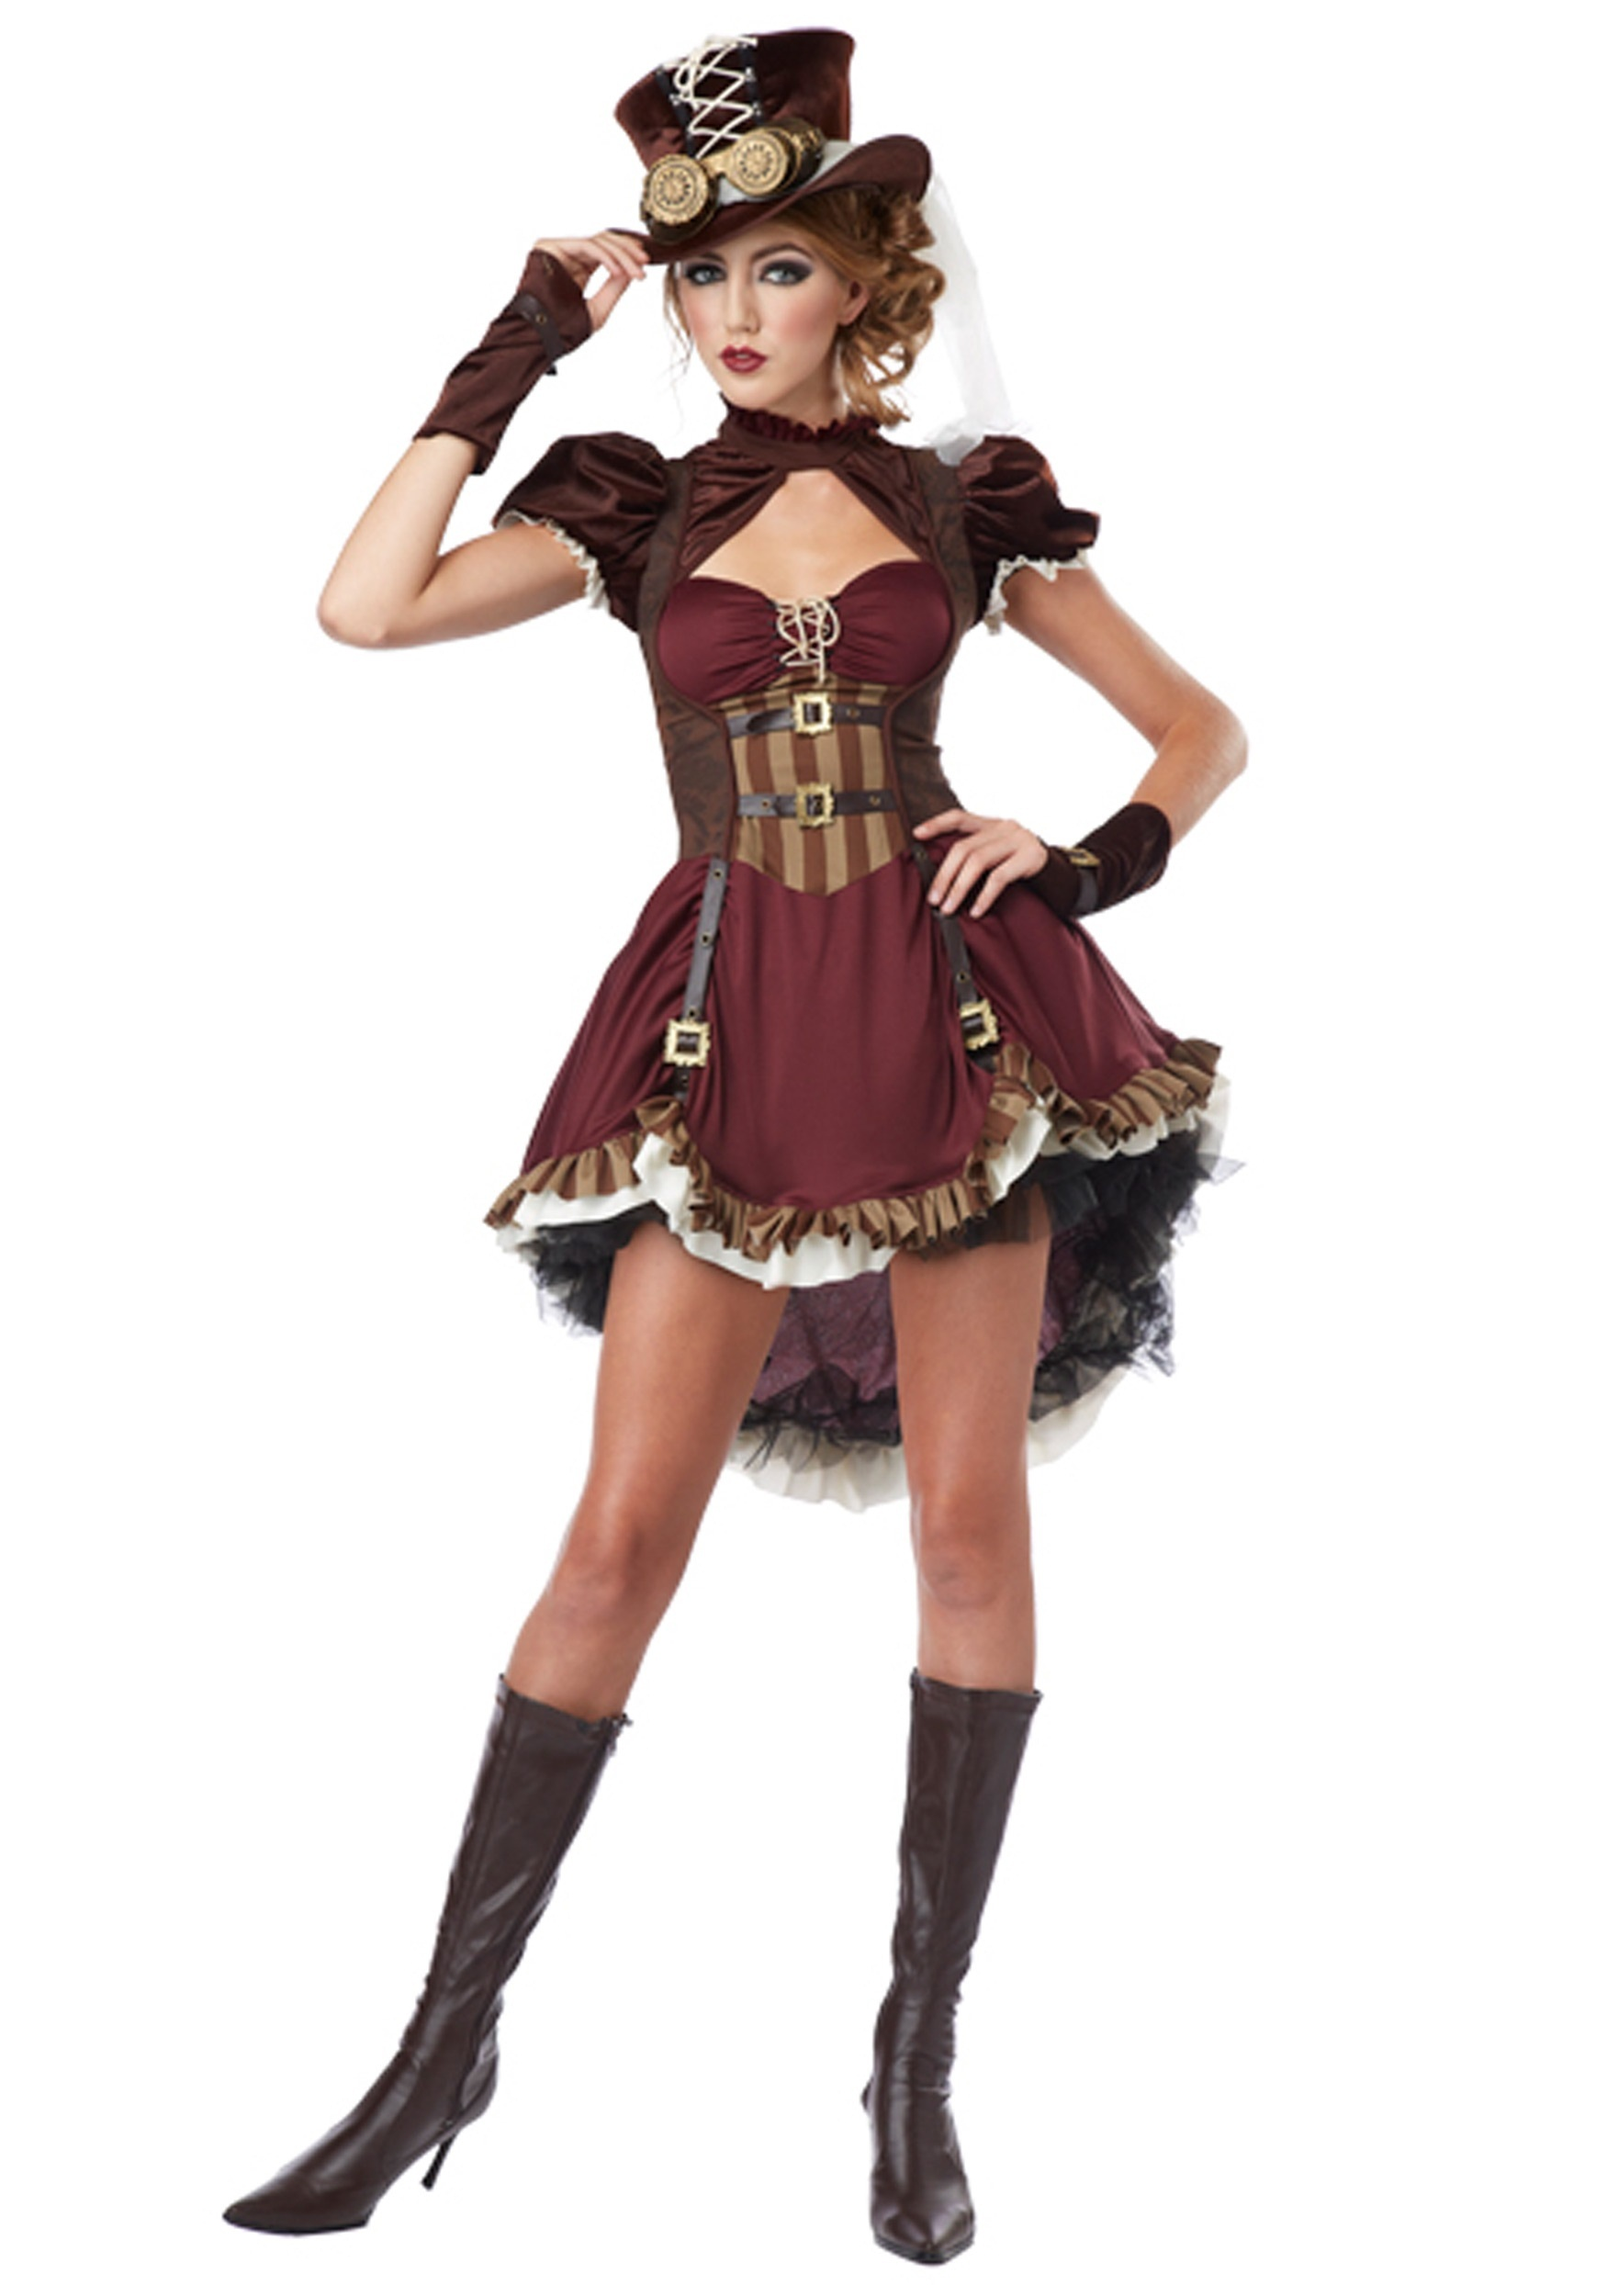 Steampunk Lady Plus Size Costume for Women   Decade Costumes